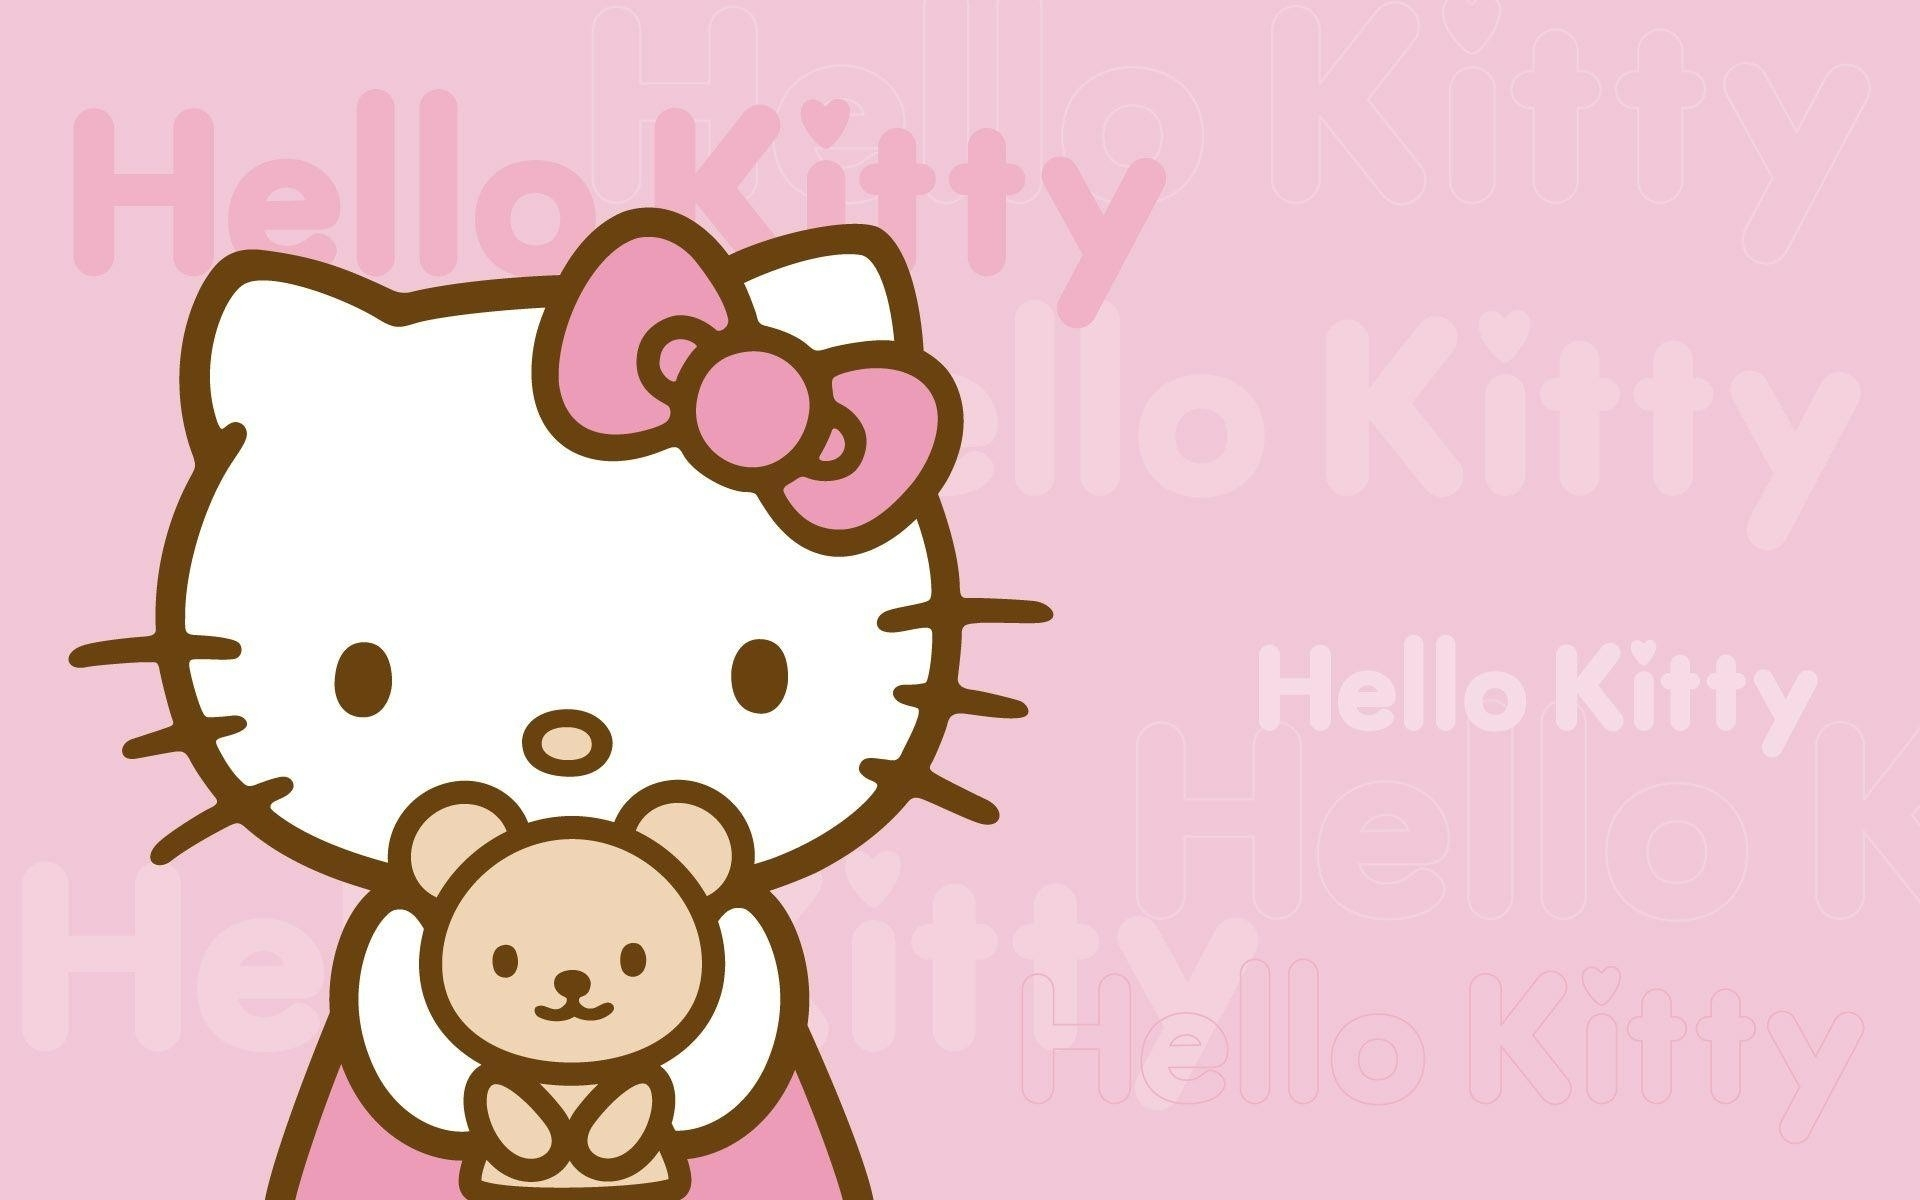 hello kitty desktop background wallpapers (61+ images)